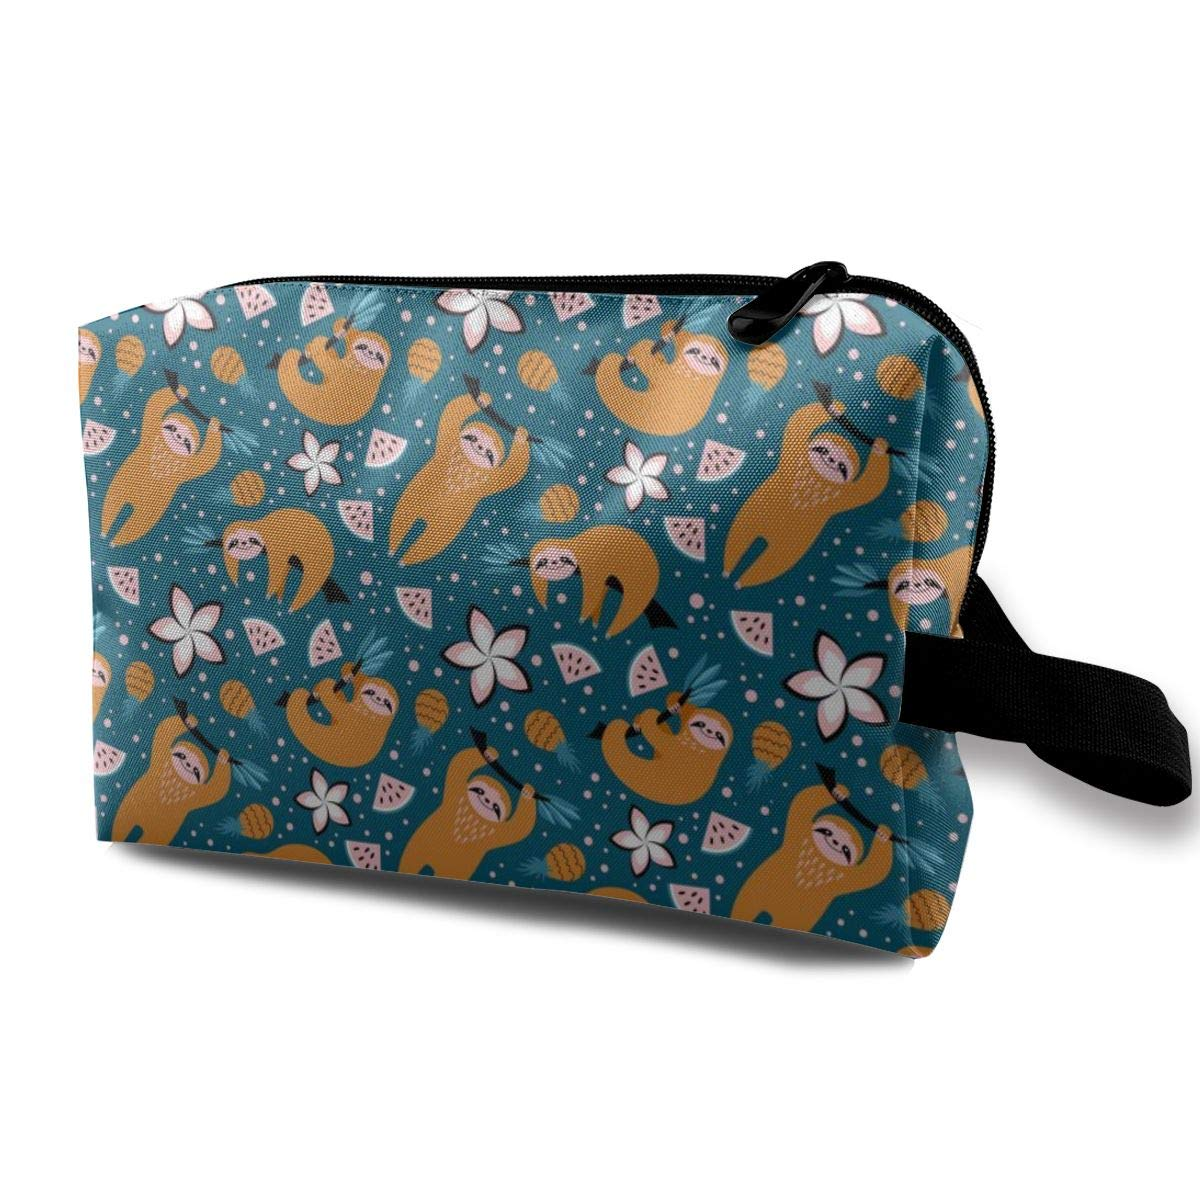 Cute Sloths And Fruits Flower Cosmetic Bag Adorable Roomy Makeup Bags Travel Waterproof Toiletry Bag Accessories Organizer for Women Men Kid